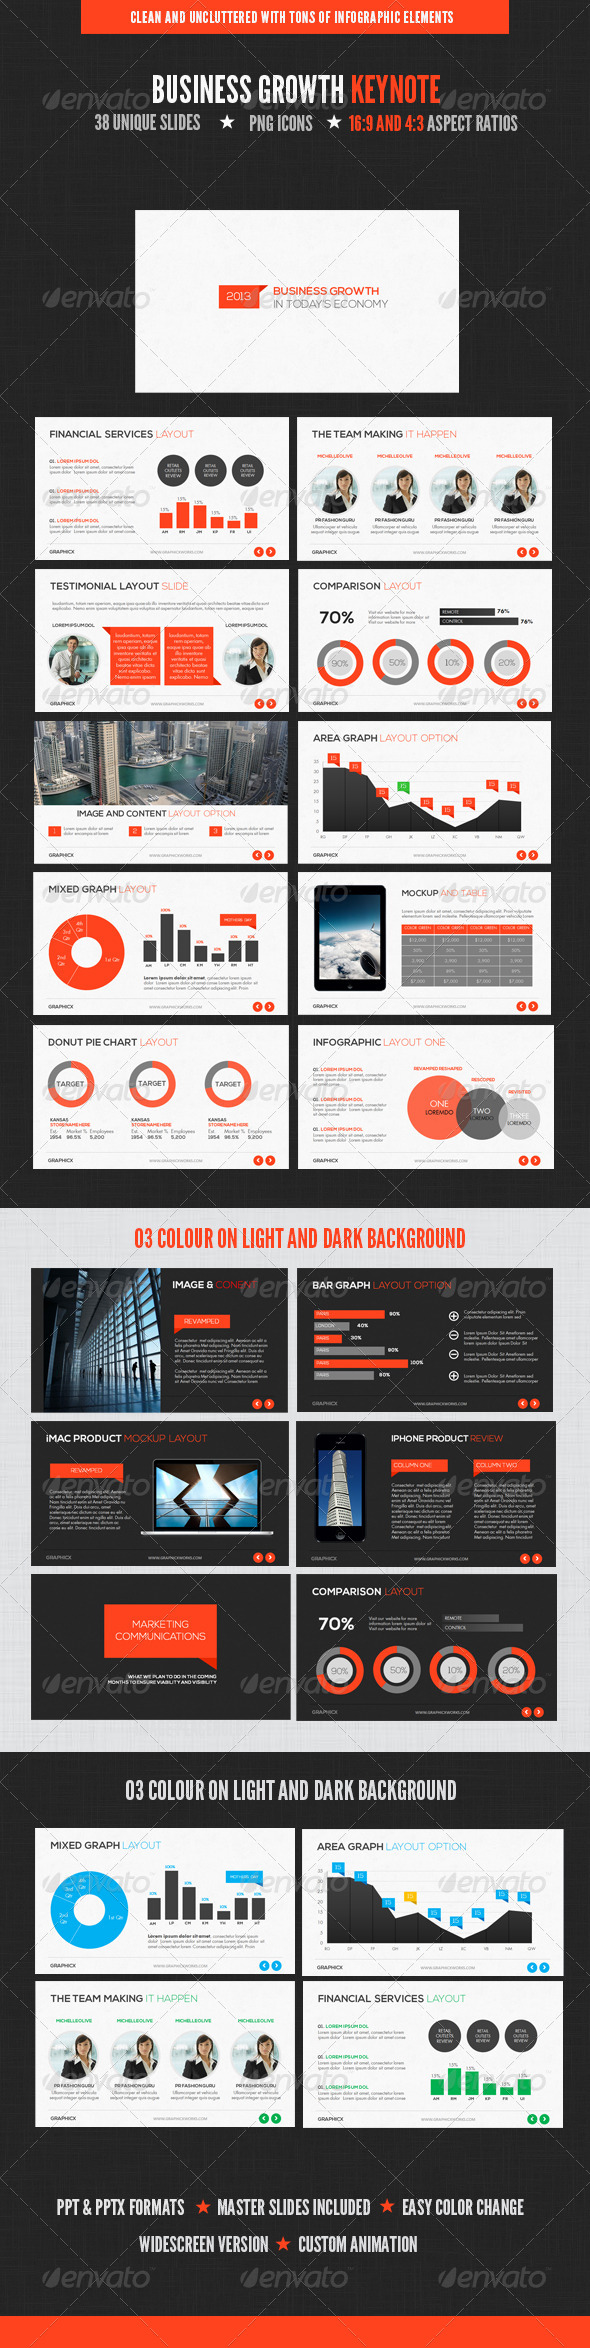 GraphicRiver Business Growth Keynote 4047697